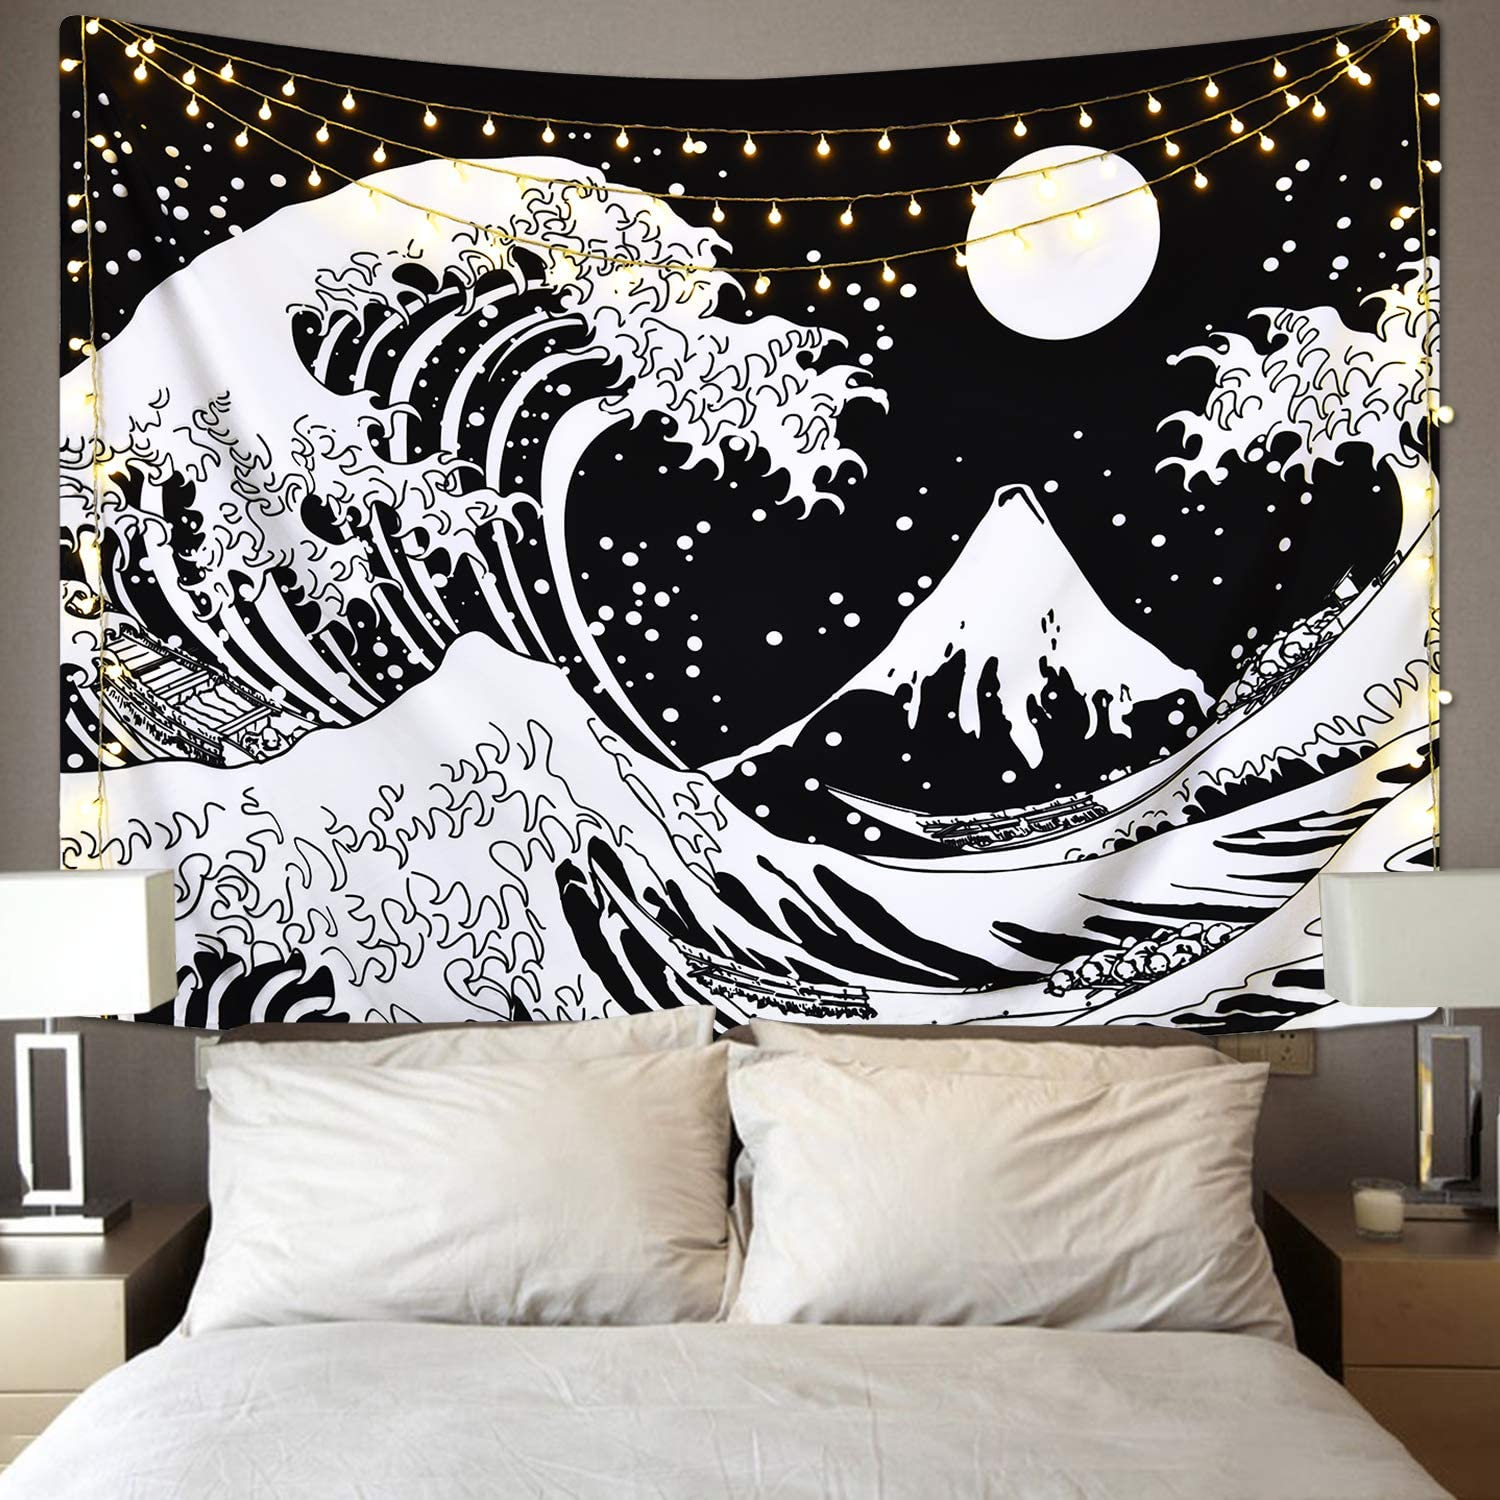 Amazon Com Japanese Wave Tapestry Kanagawa Great Wave Wall Tapestry Wave Tapestry With Sun Tapestries Black And White Tapestry For Room Everything Else